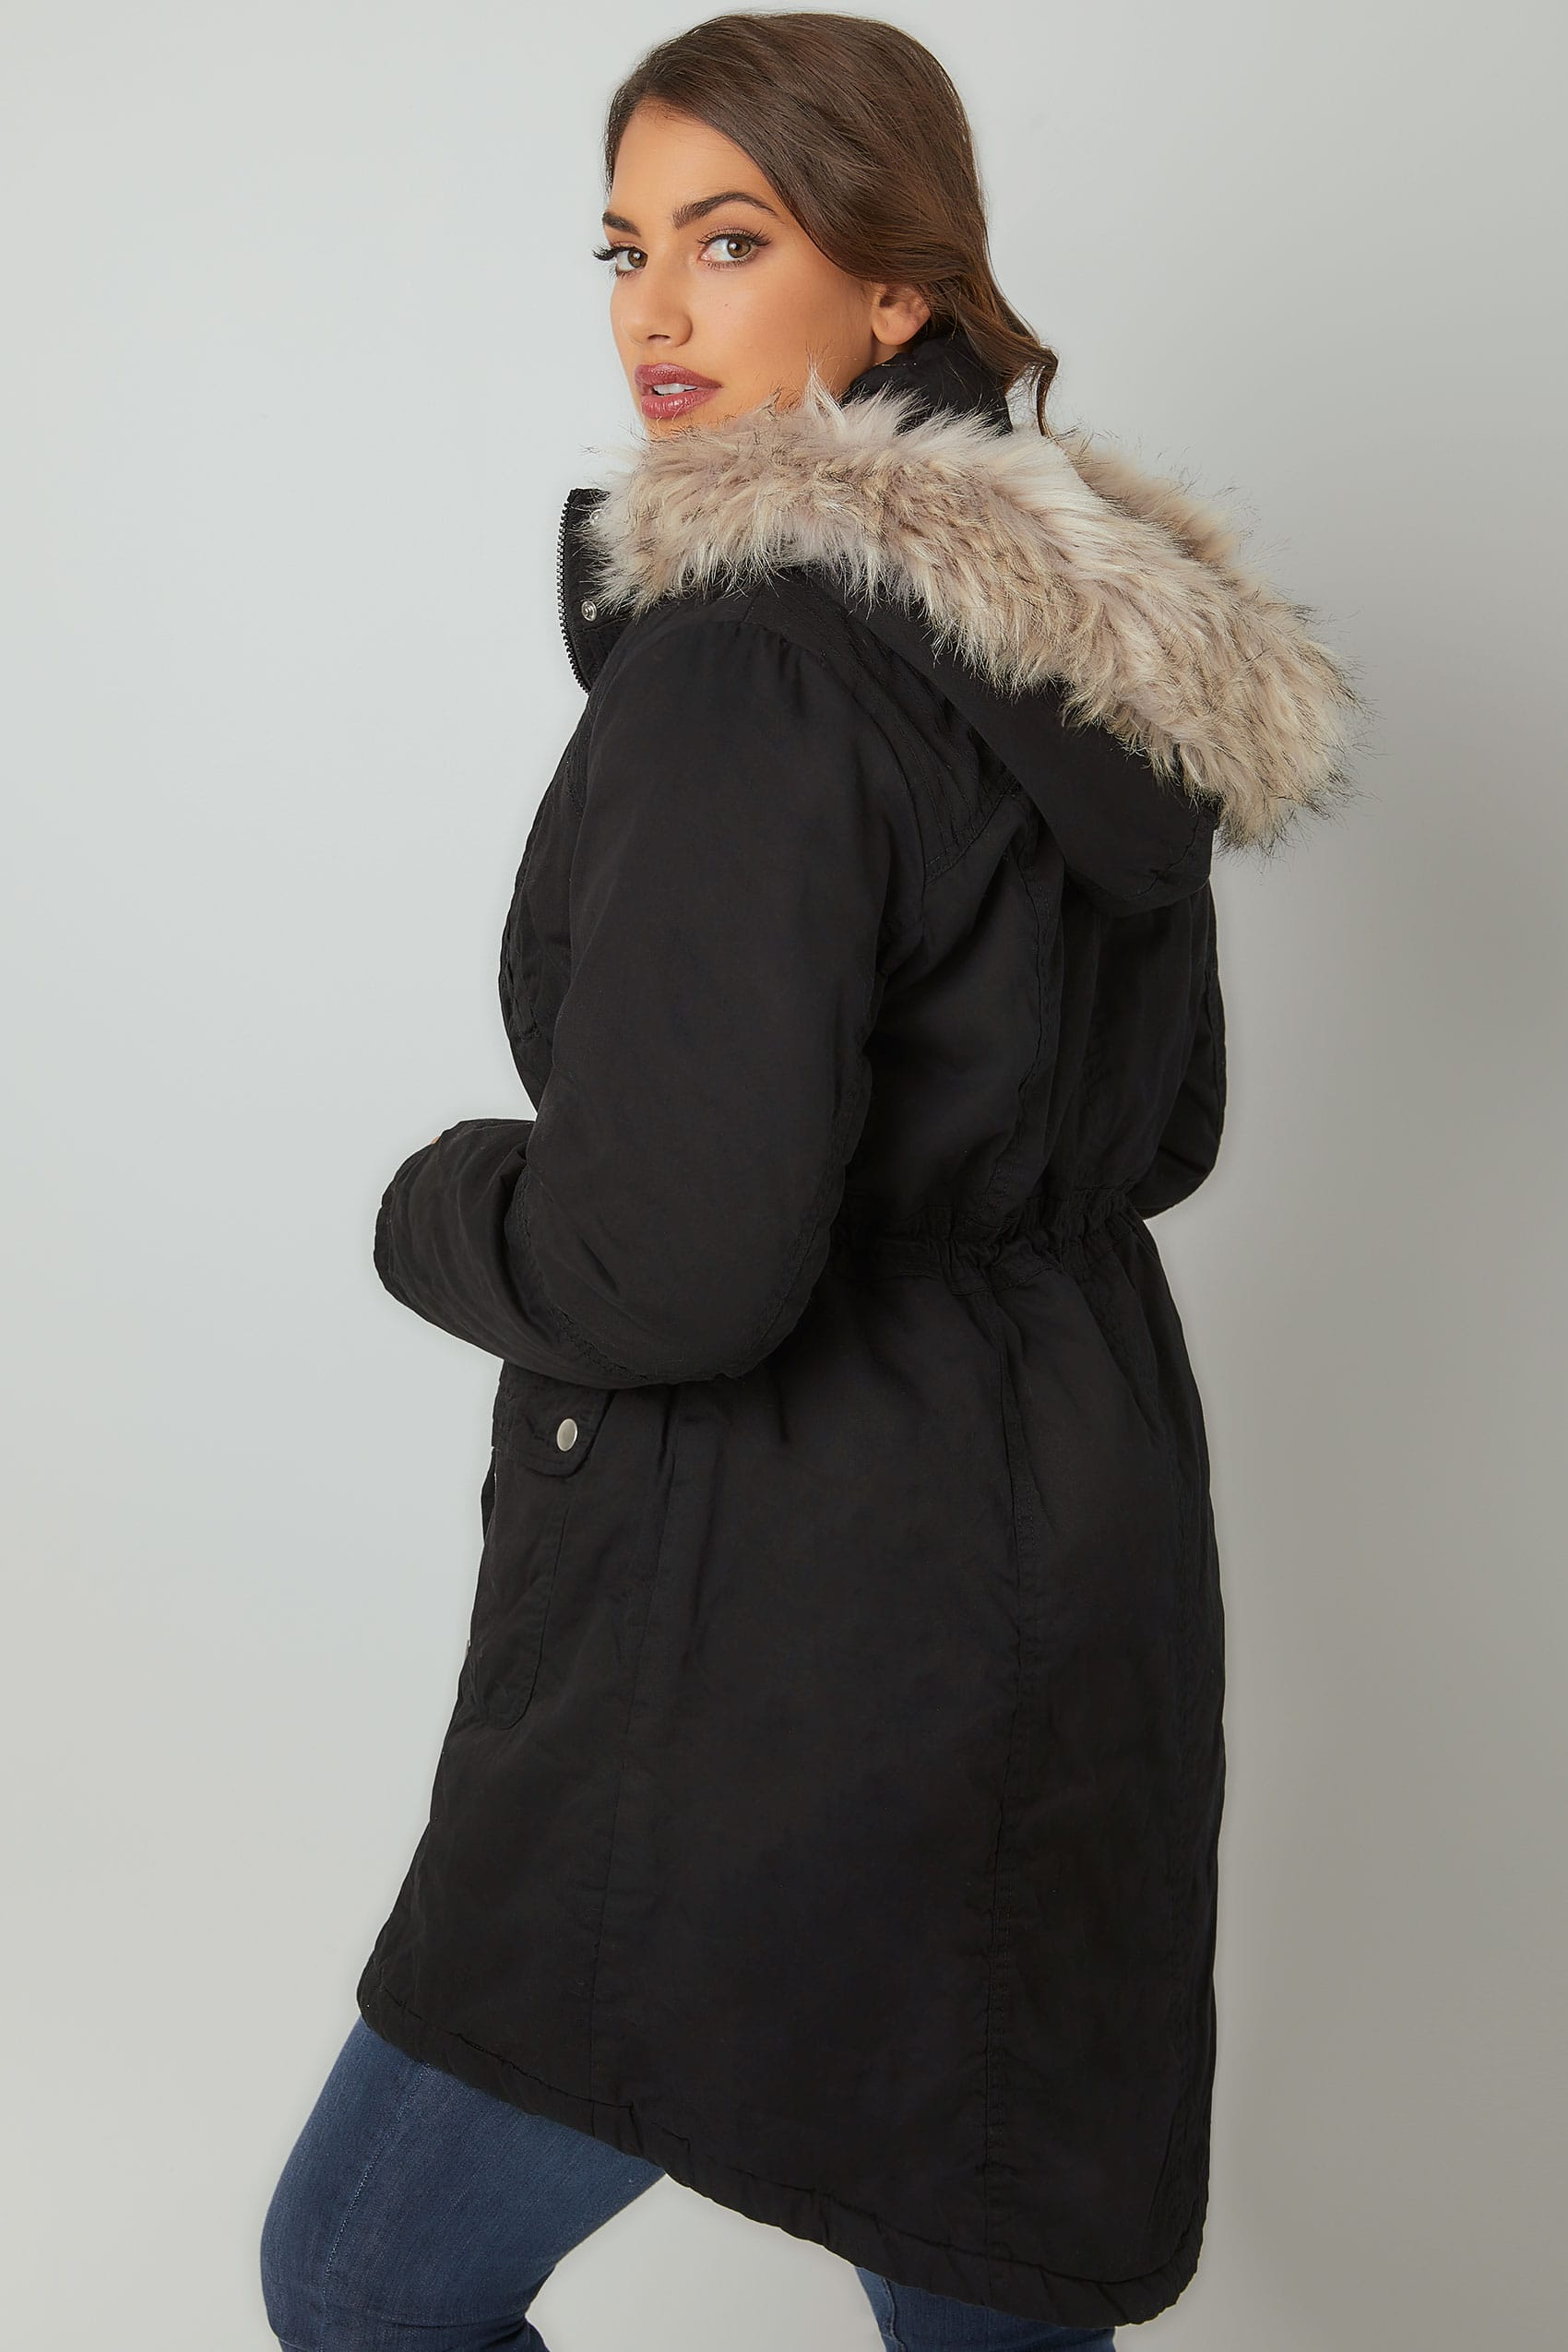 Black Cotton Parka With Faux Fur Trim Hood, Plus size 16 to 36